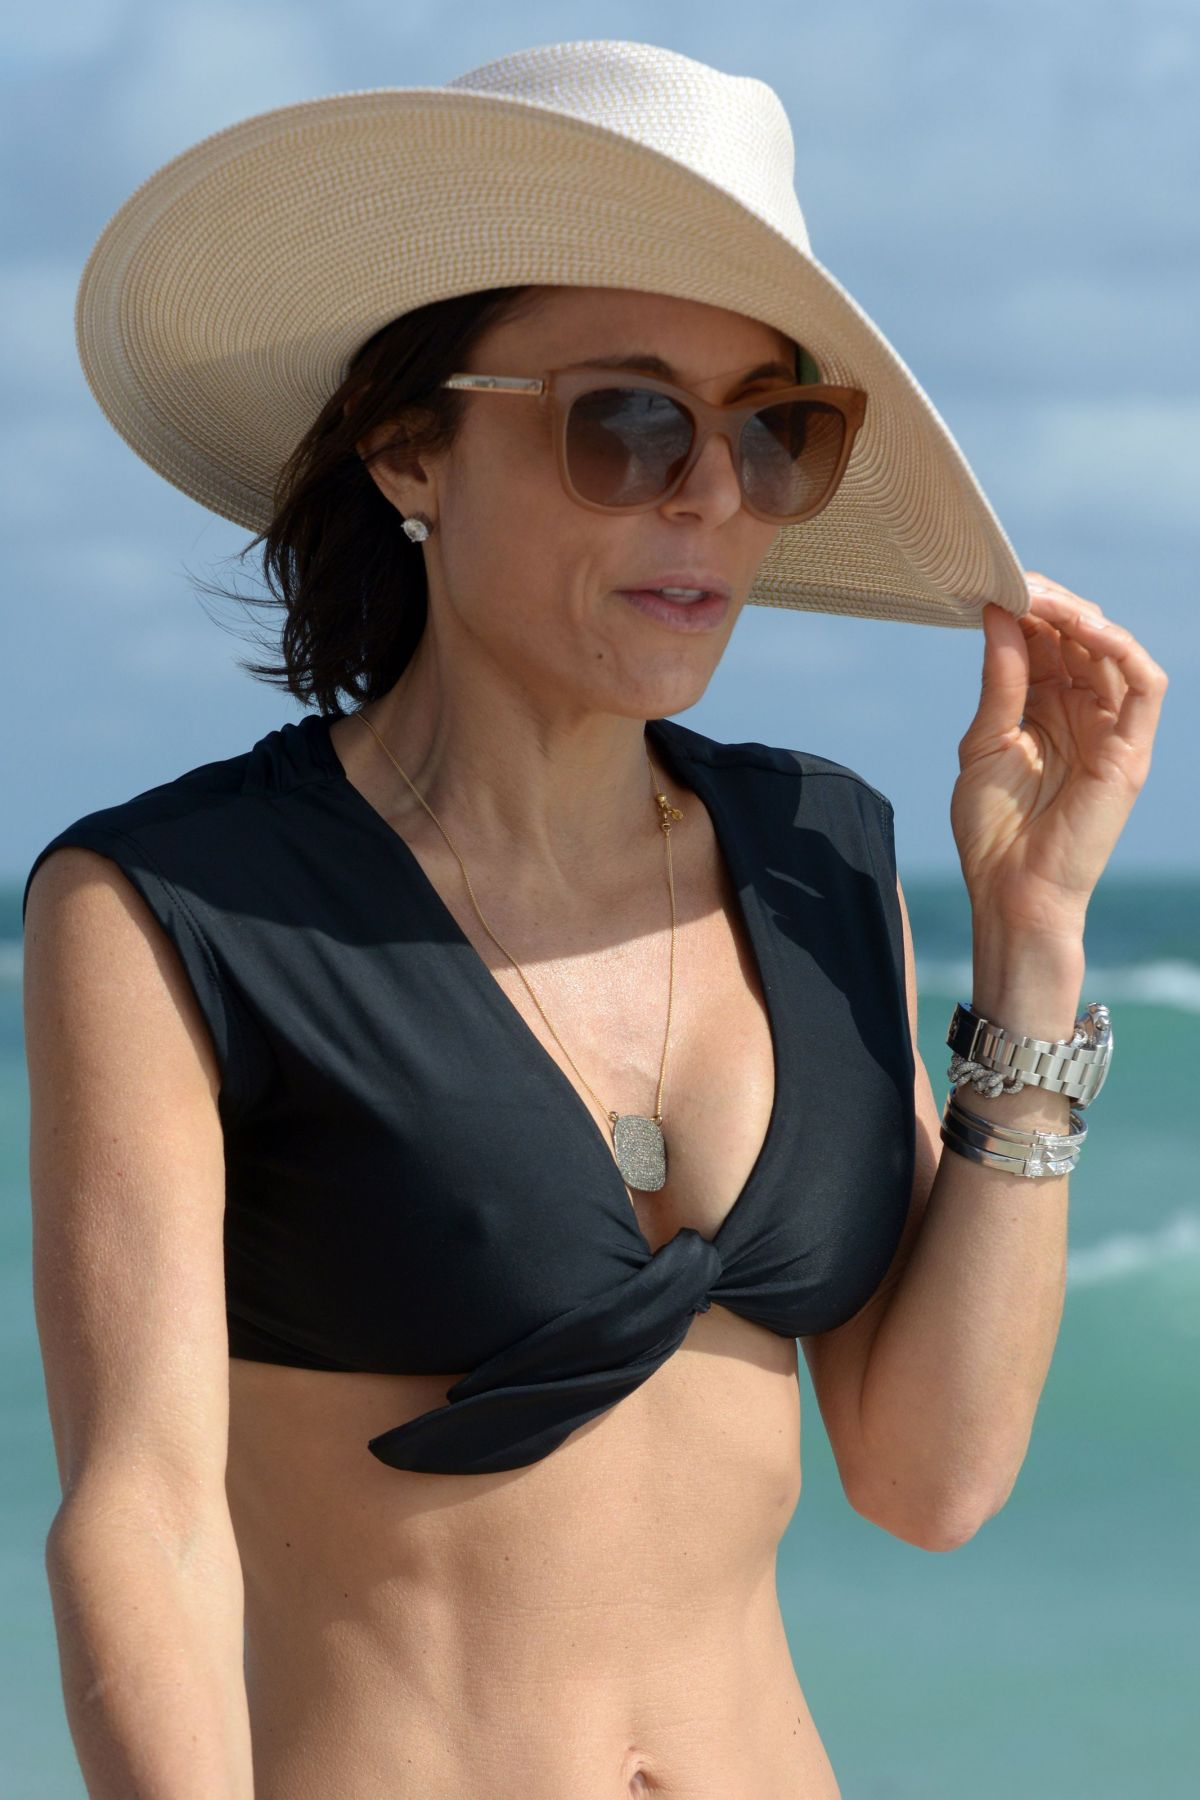 BETHENNY FRANKEL in Bikini on the Beach in Miami 12/05/2016   bethenny-frankel-in-bikini-on-the-beach-in-miami-12-05-2016_46